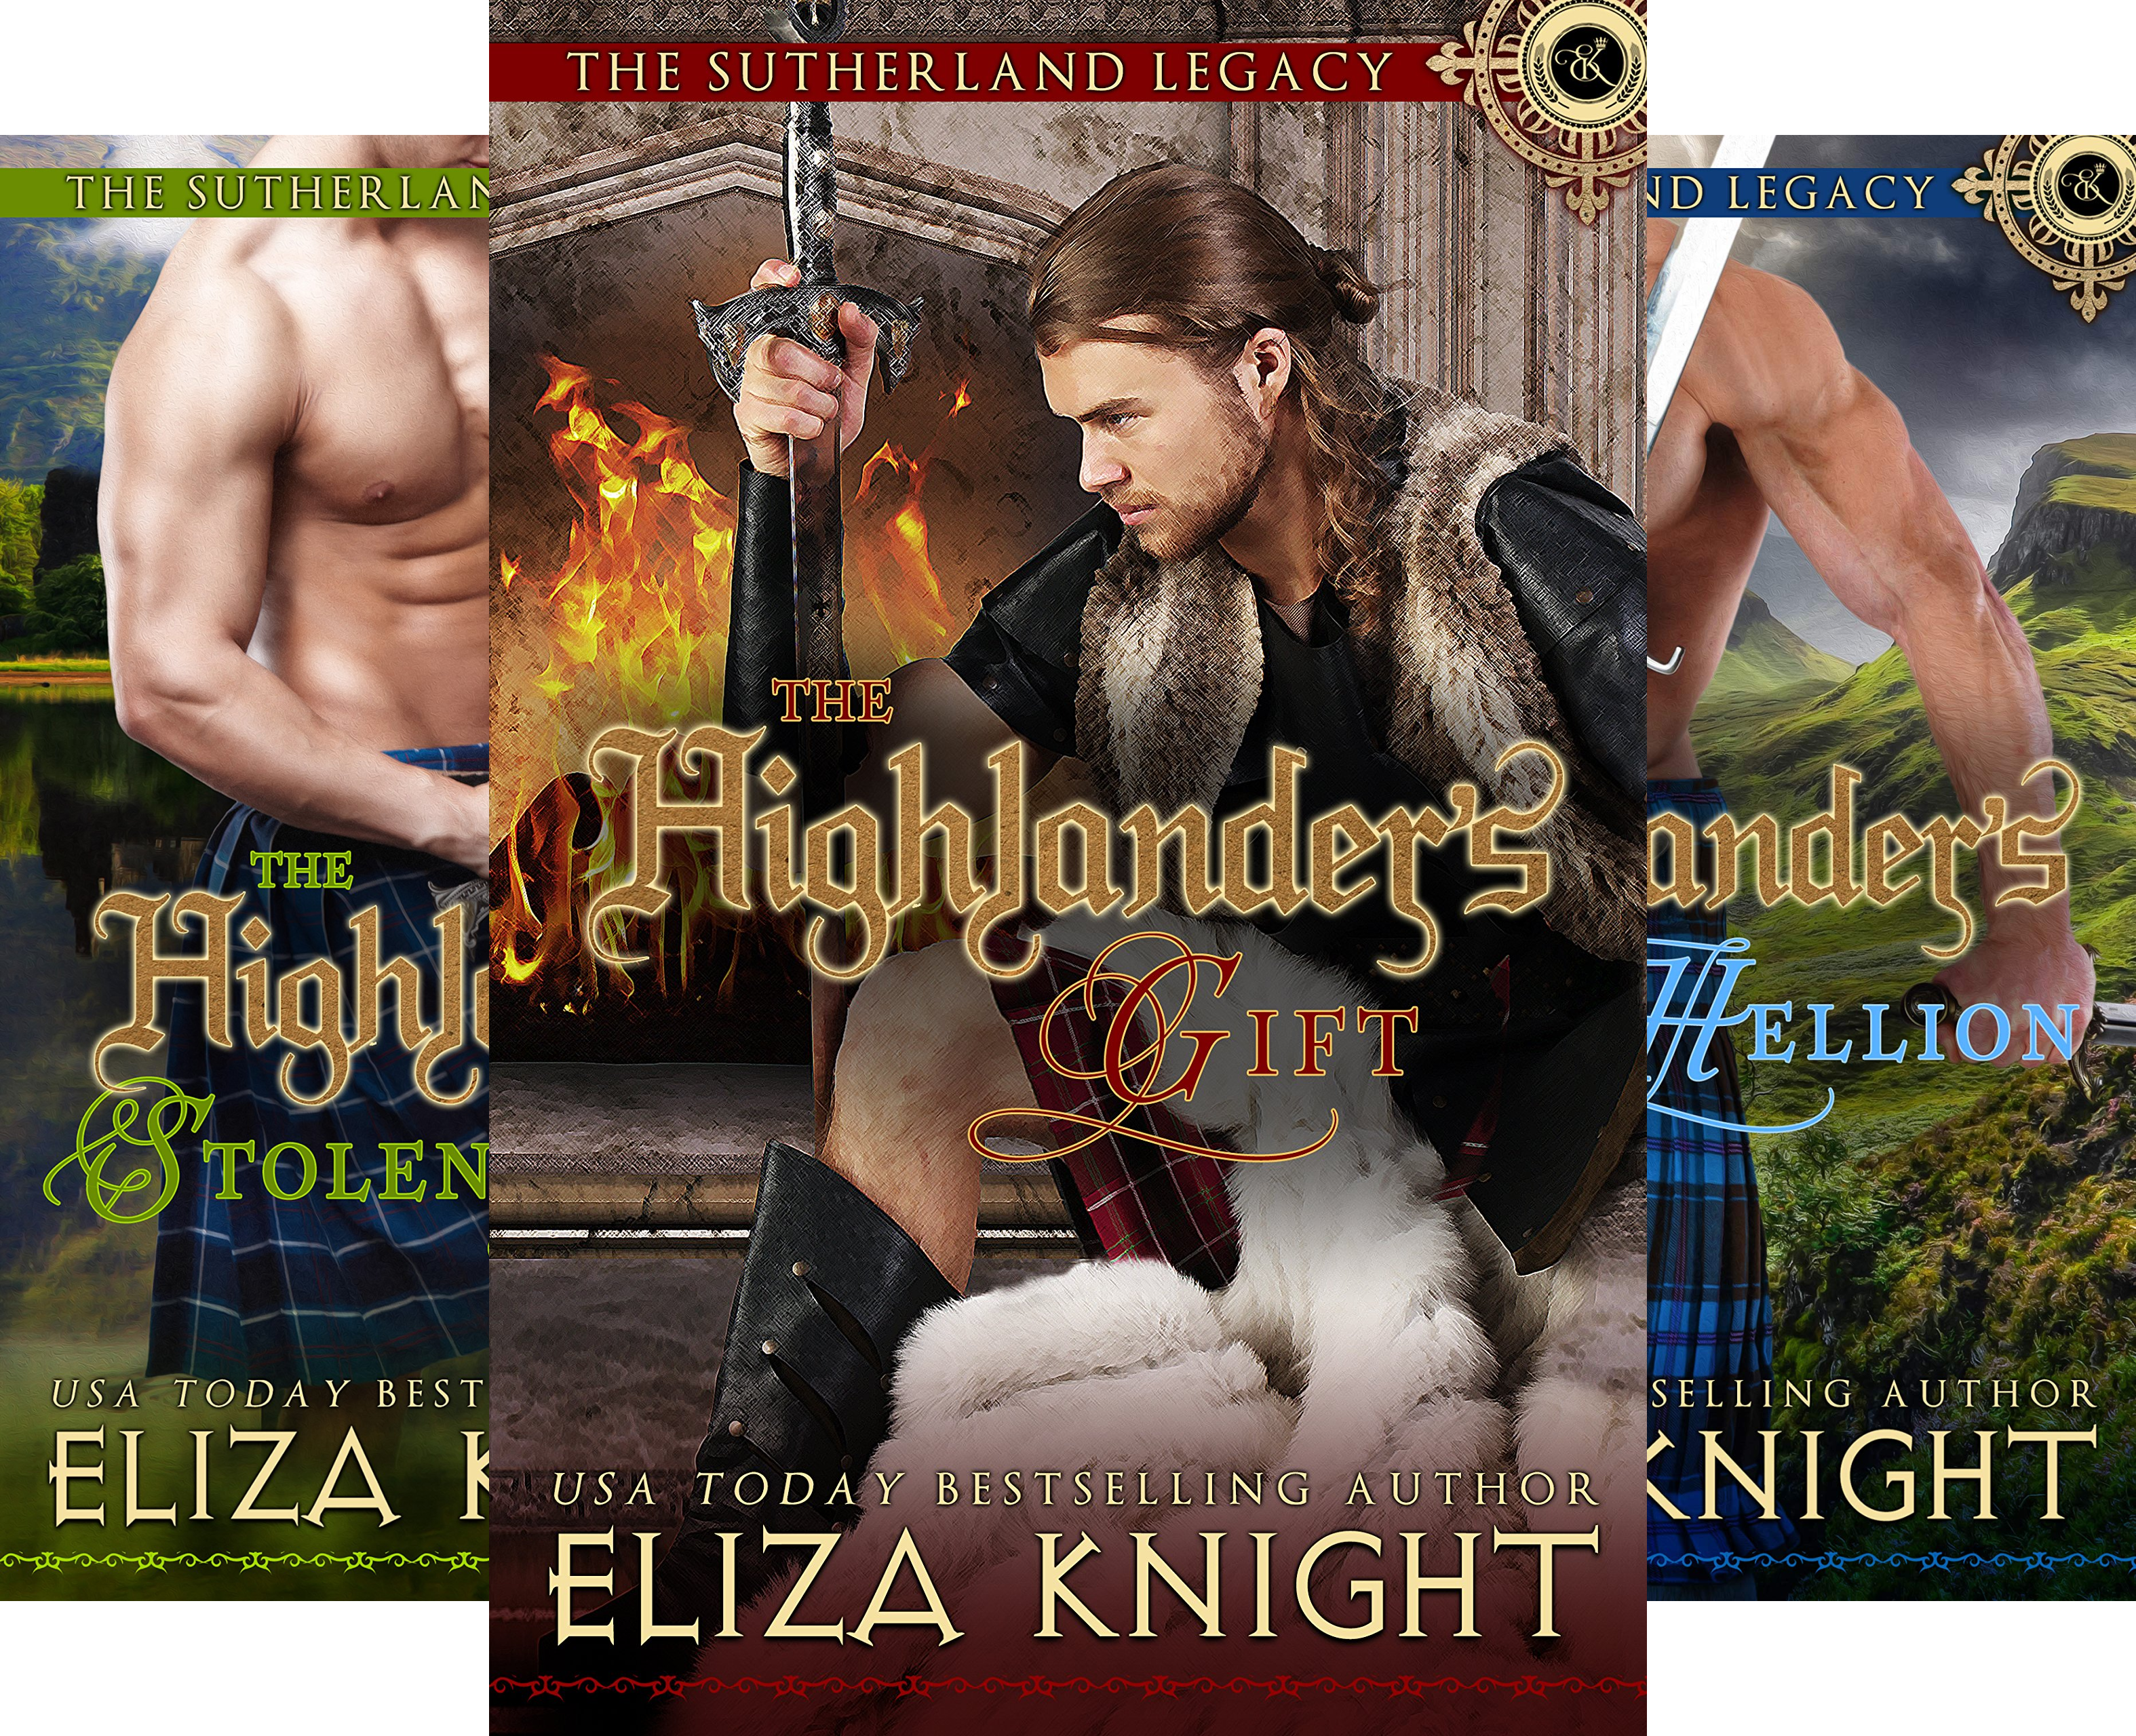 The Sutherland Legacy (4 Book Series)